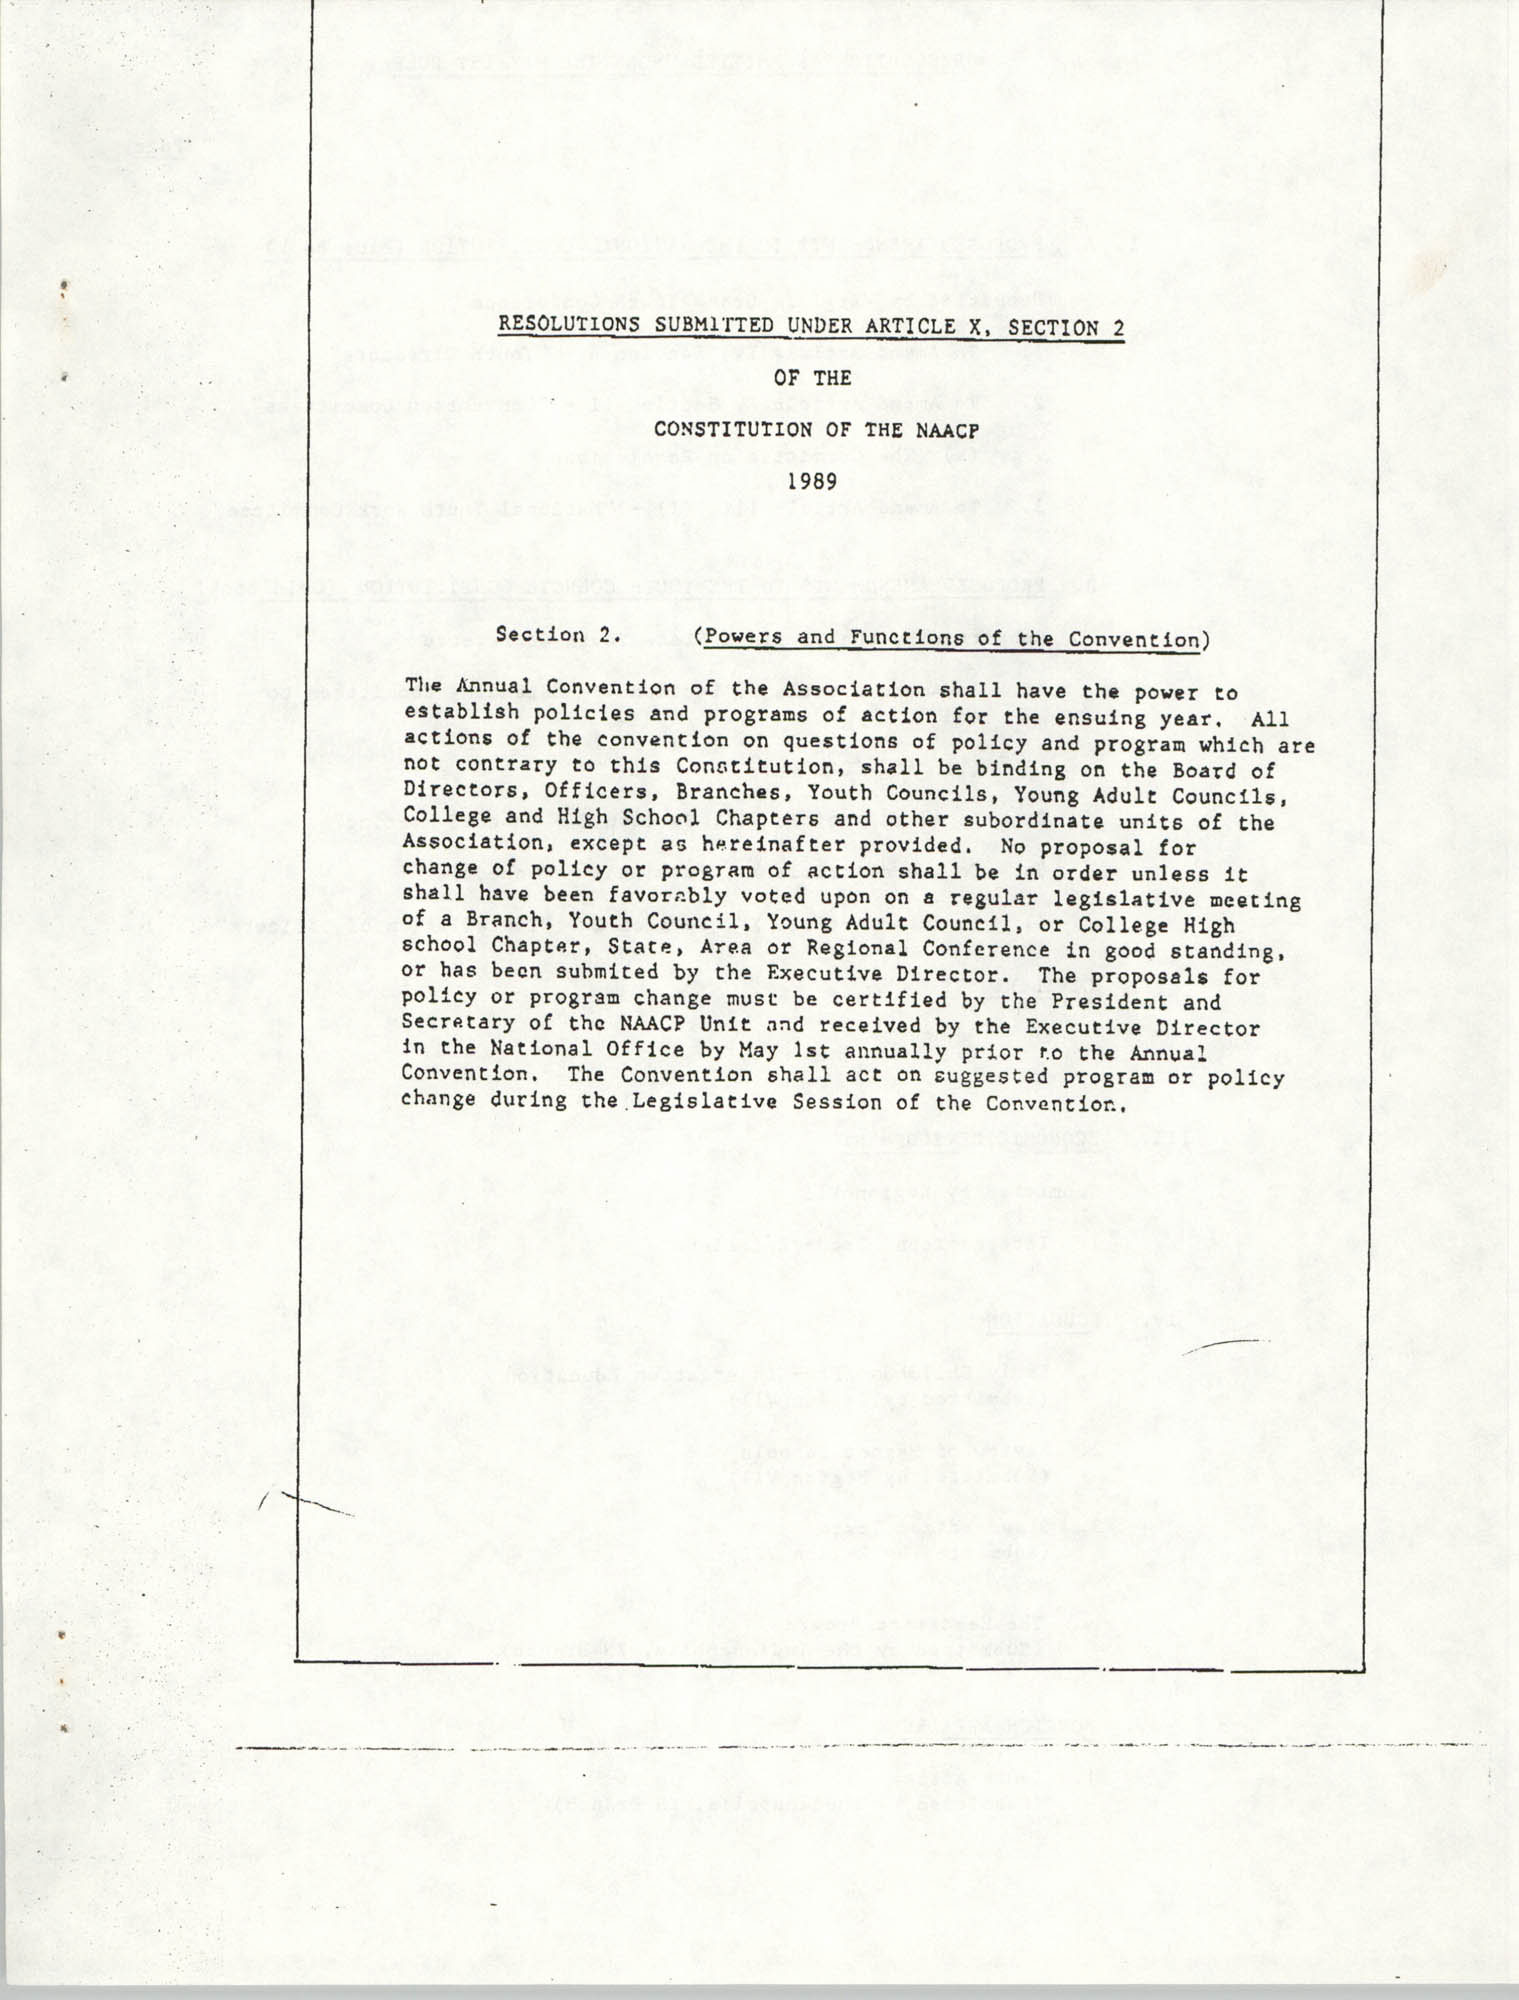 Resolutions Submitted Under Article X, Section 2 of the Constitution of the NAACP, Cover